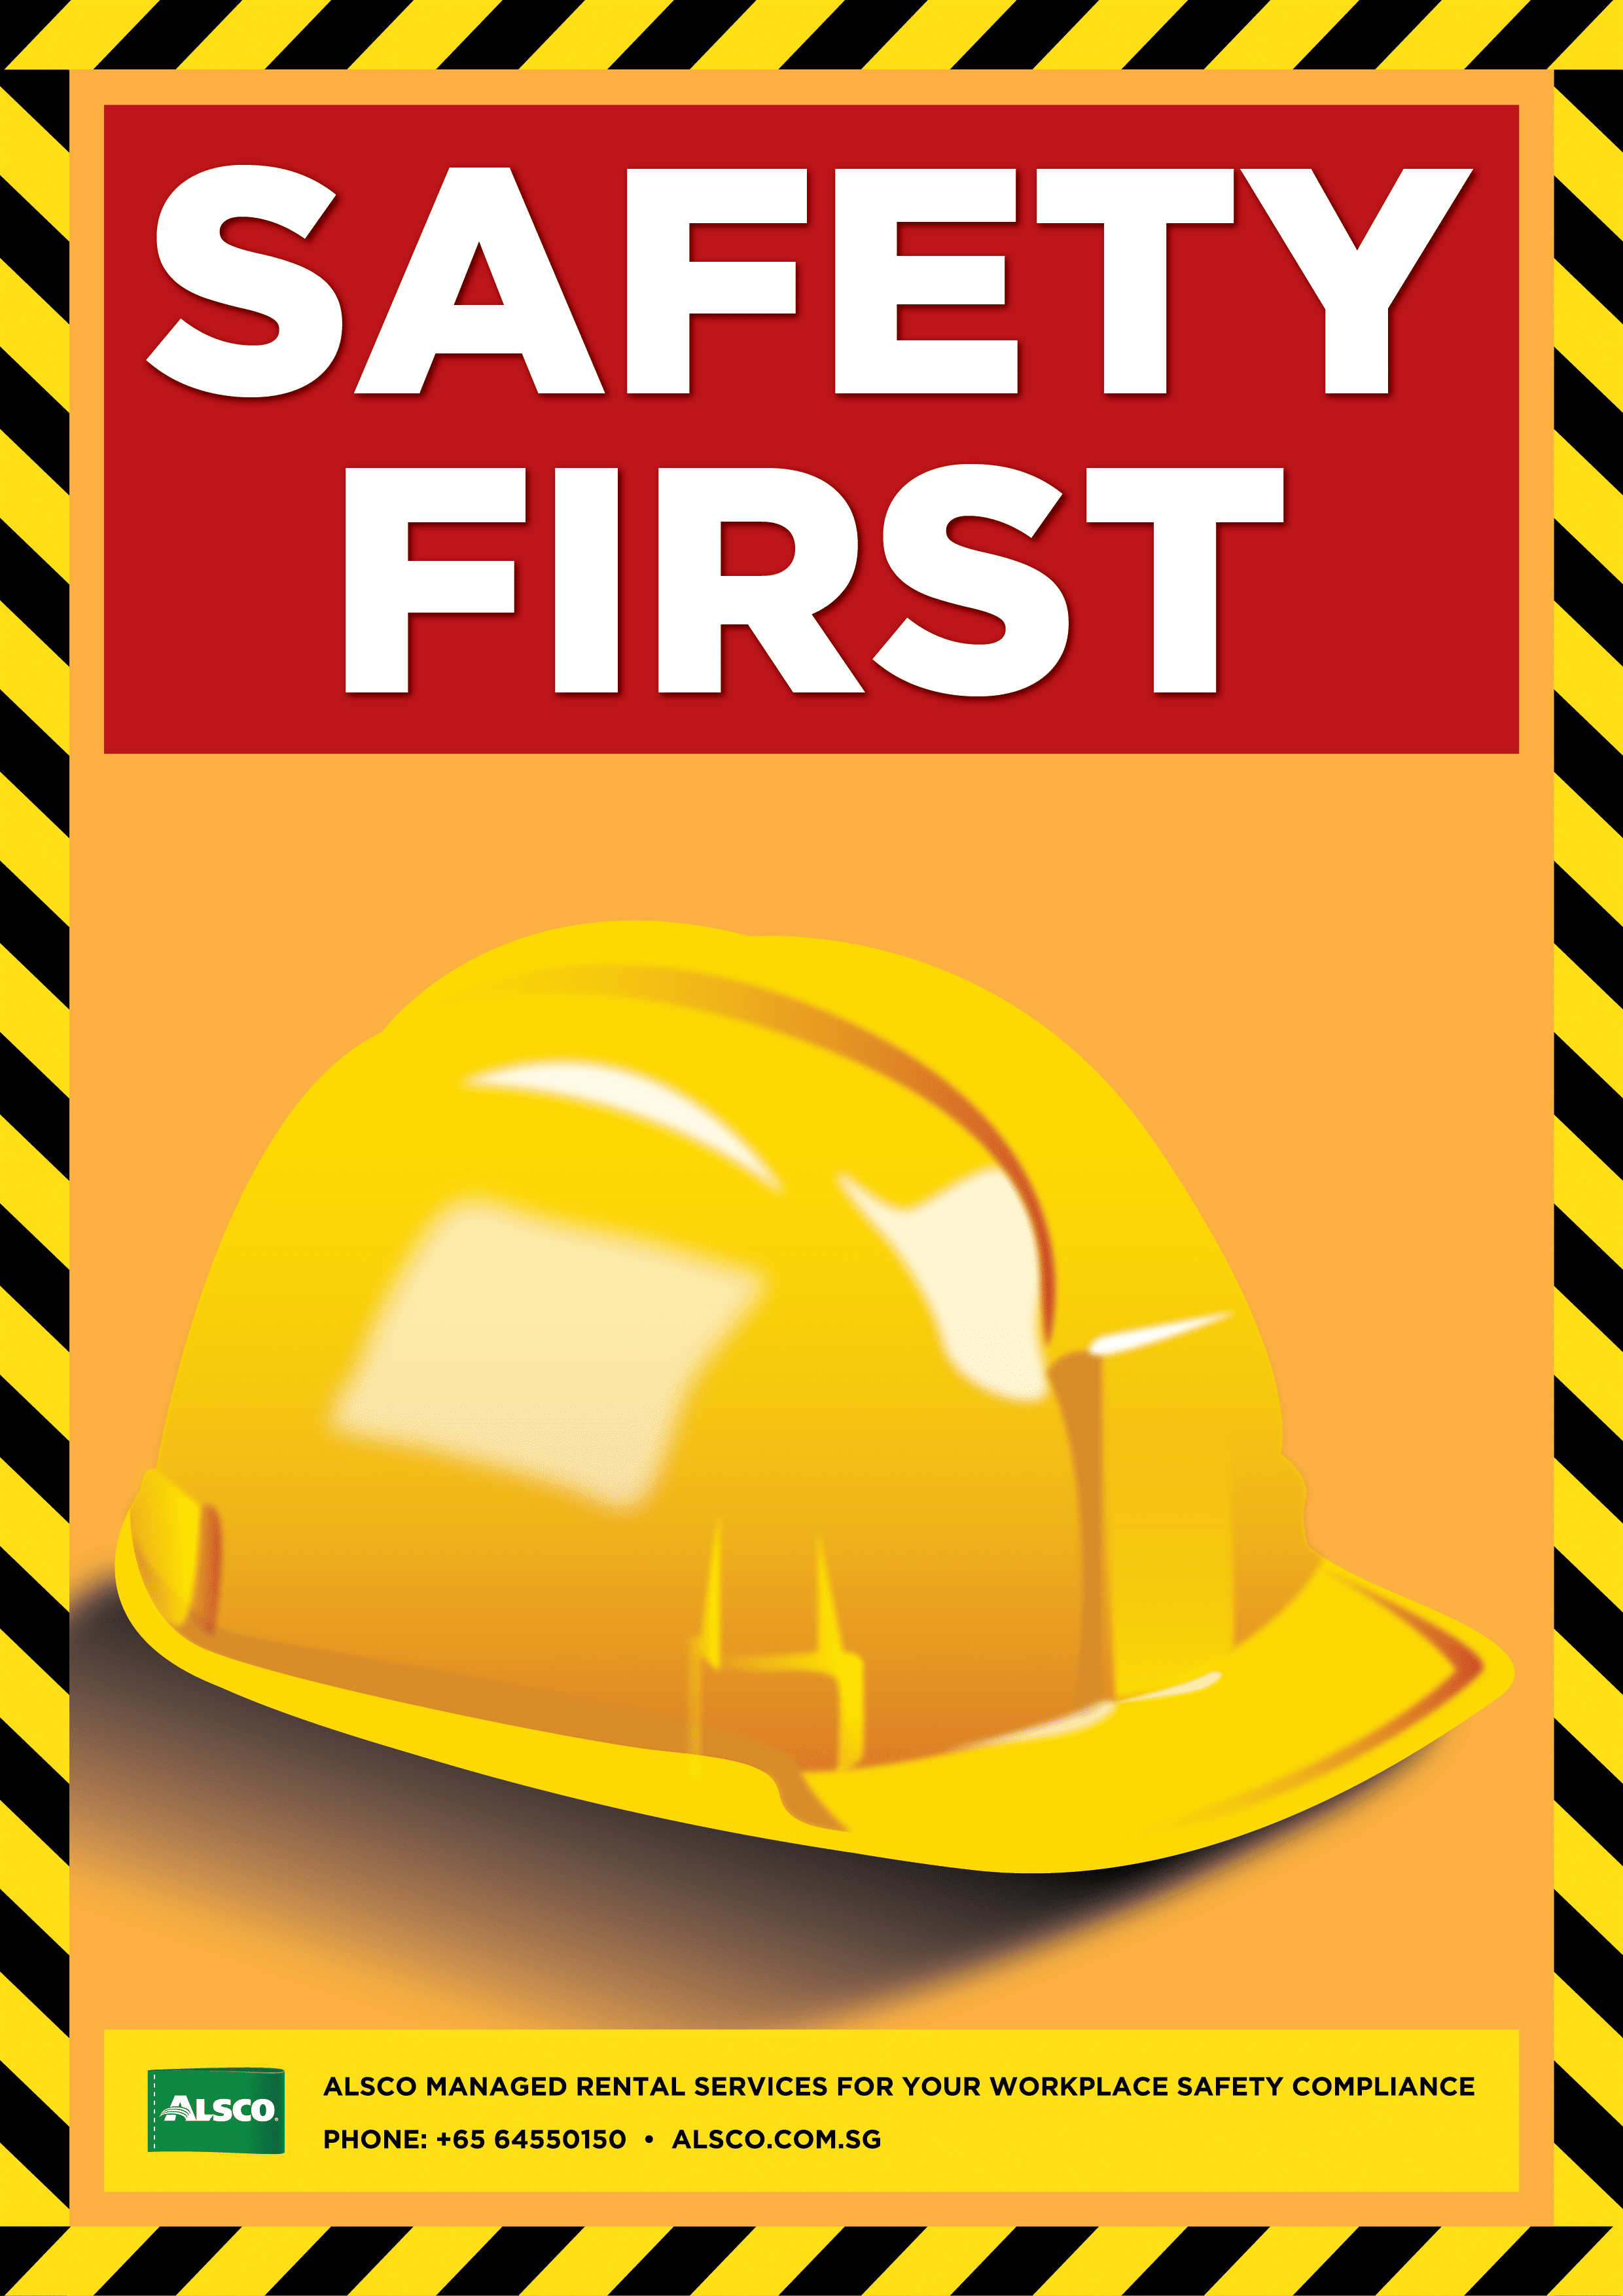 Image Result For Safety Posters High Quality